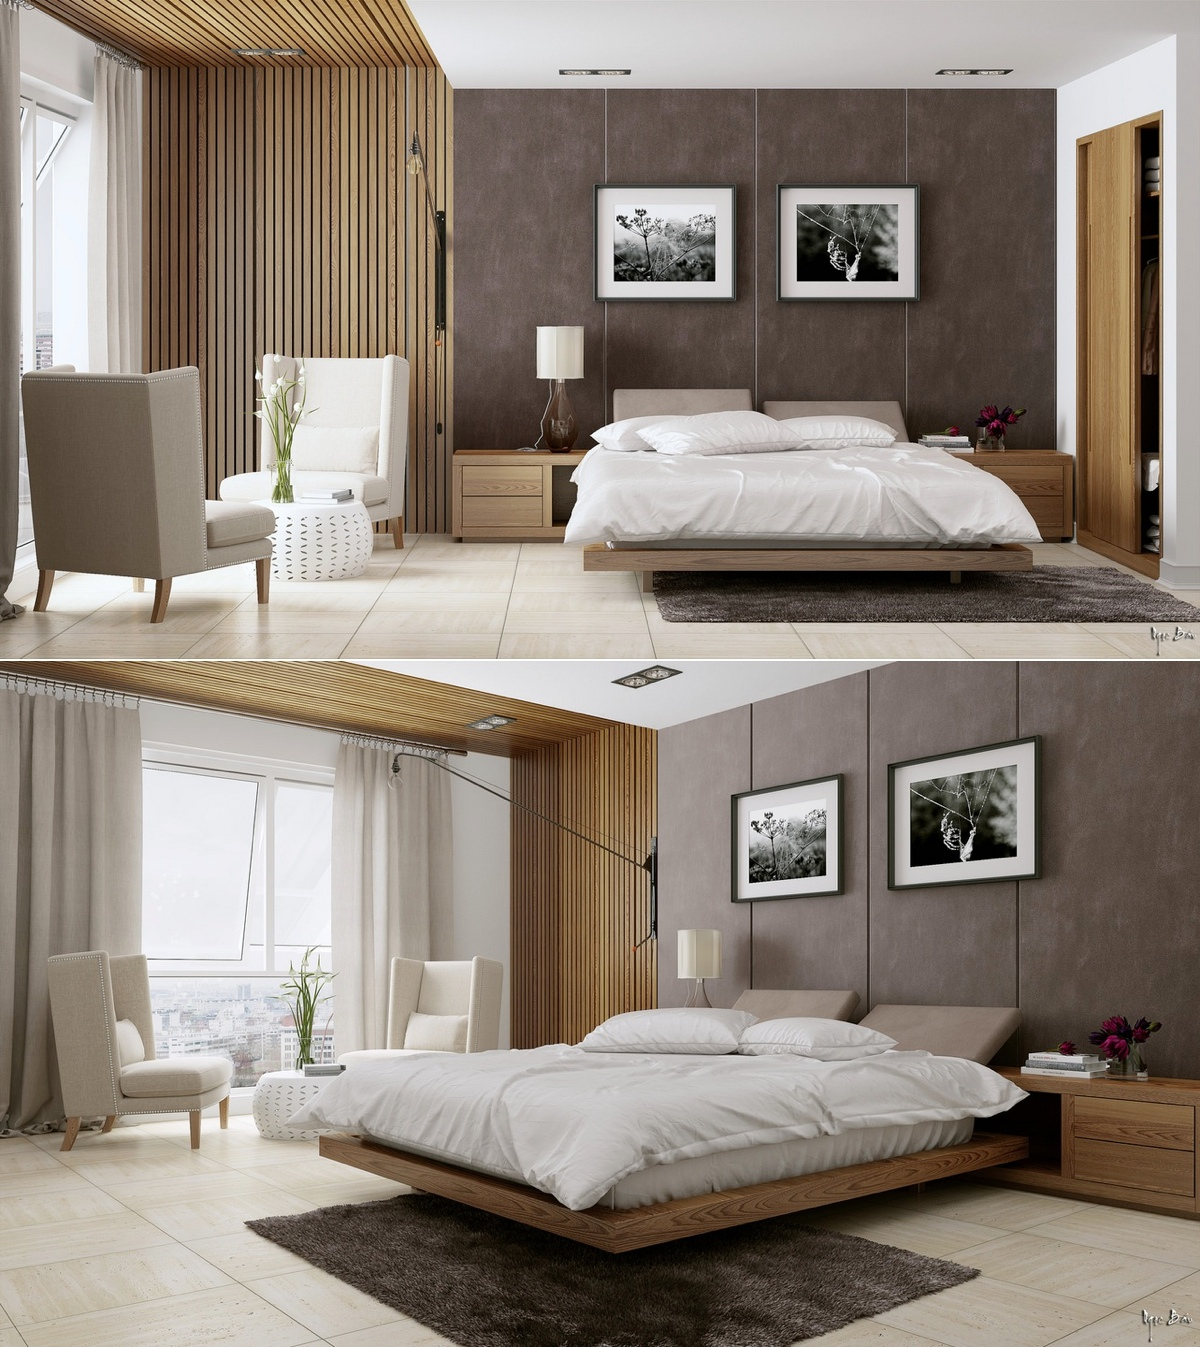 Romantic modern bedroom interior design ideas for Bed room interior design images